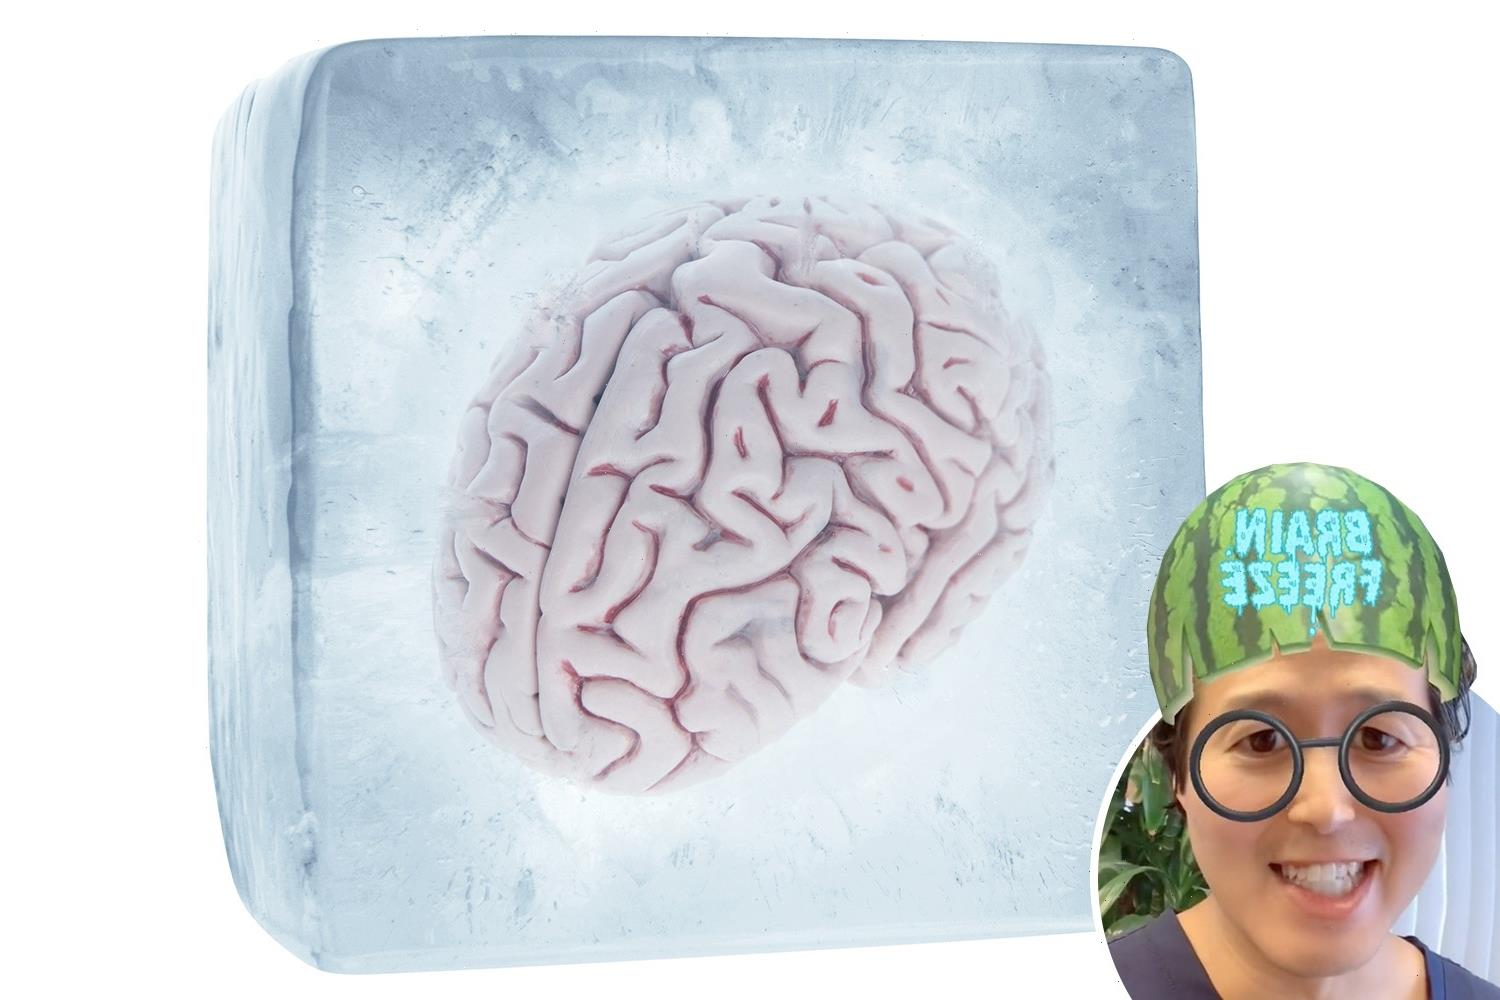 Doctor's 'body hacks' go viral with tips to tackle brain freeze and itchy mozzie bites